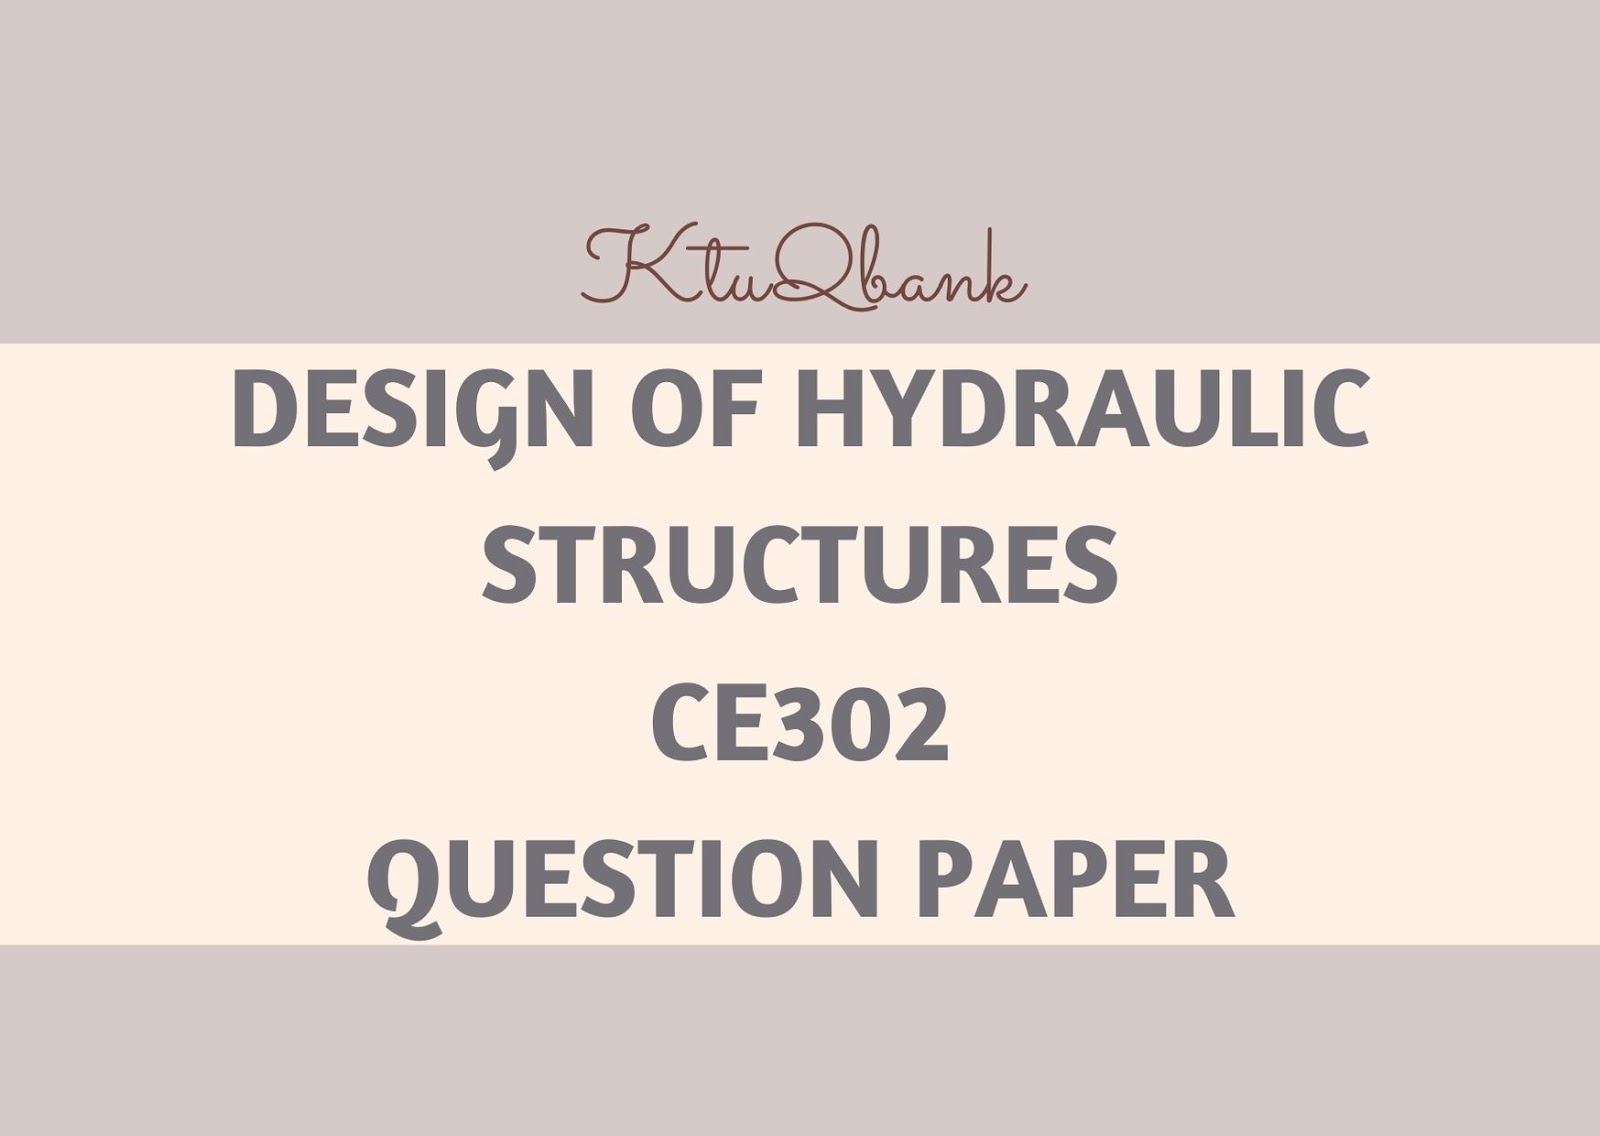 Design of Hydraulic Structures | CE302 | Question Papers (2015 batch)